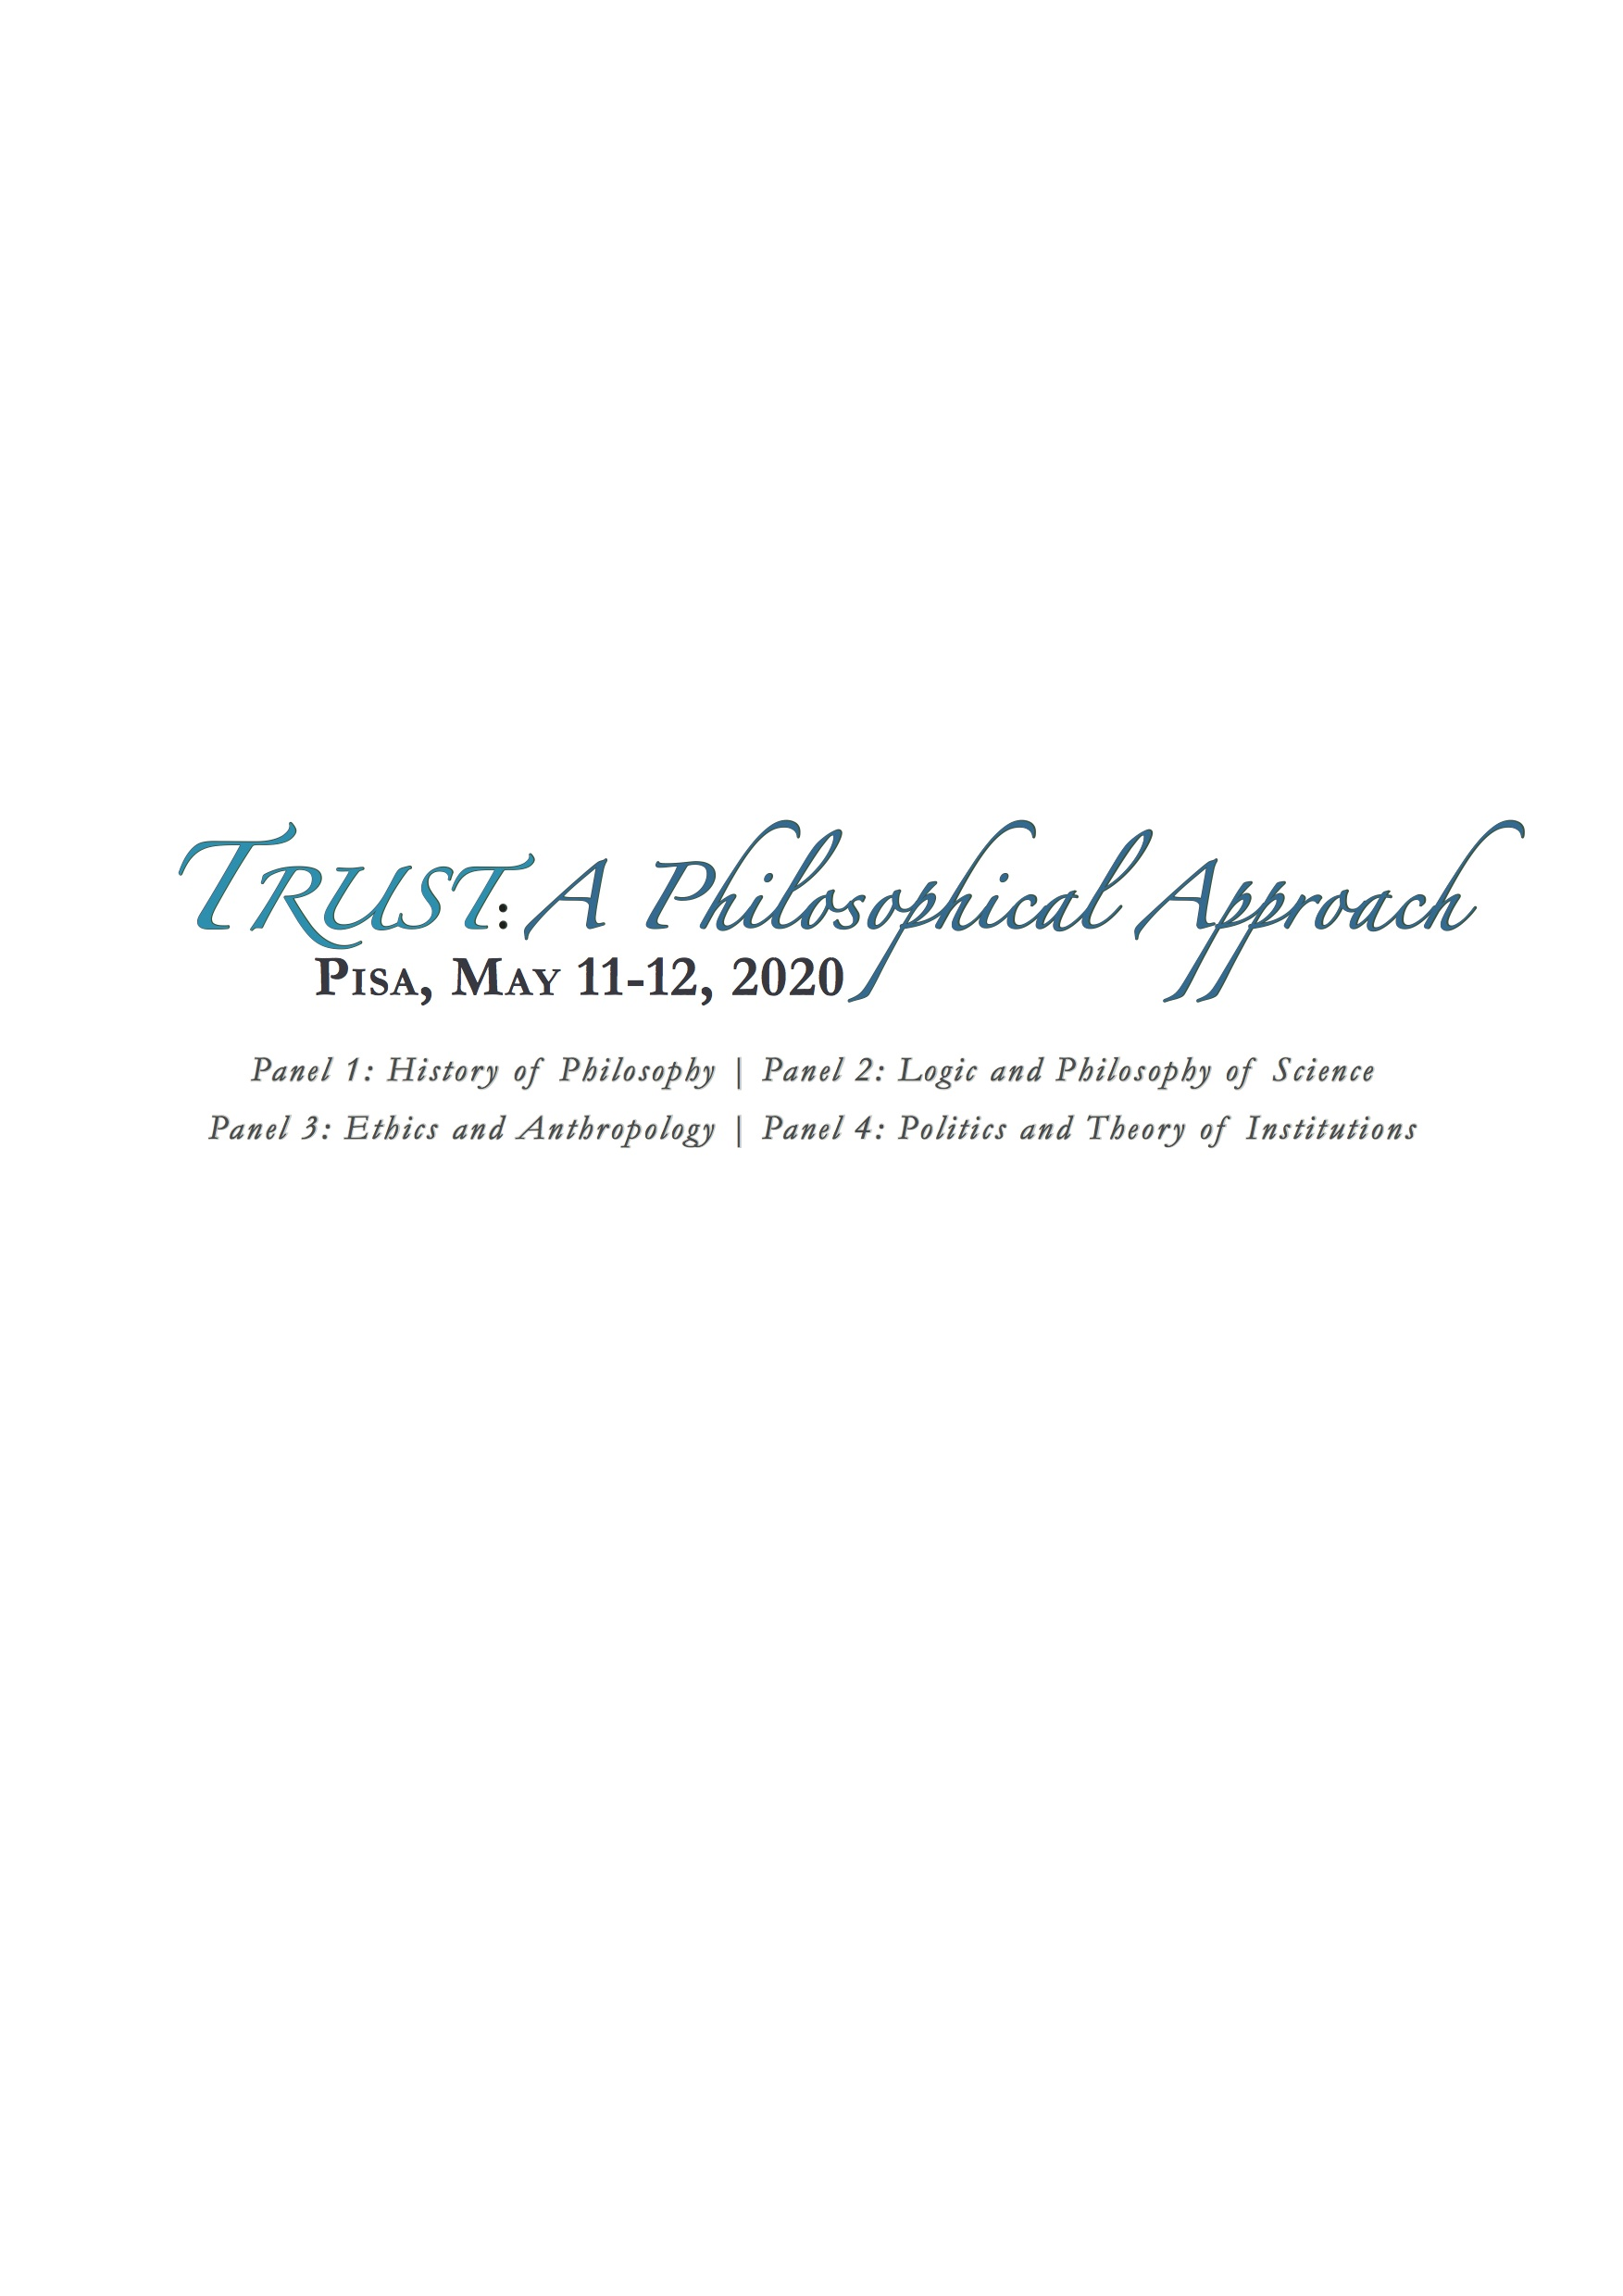 Trust: A Philosophical Approach